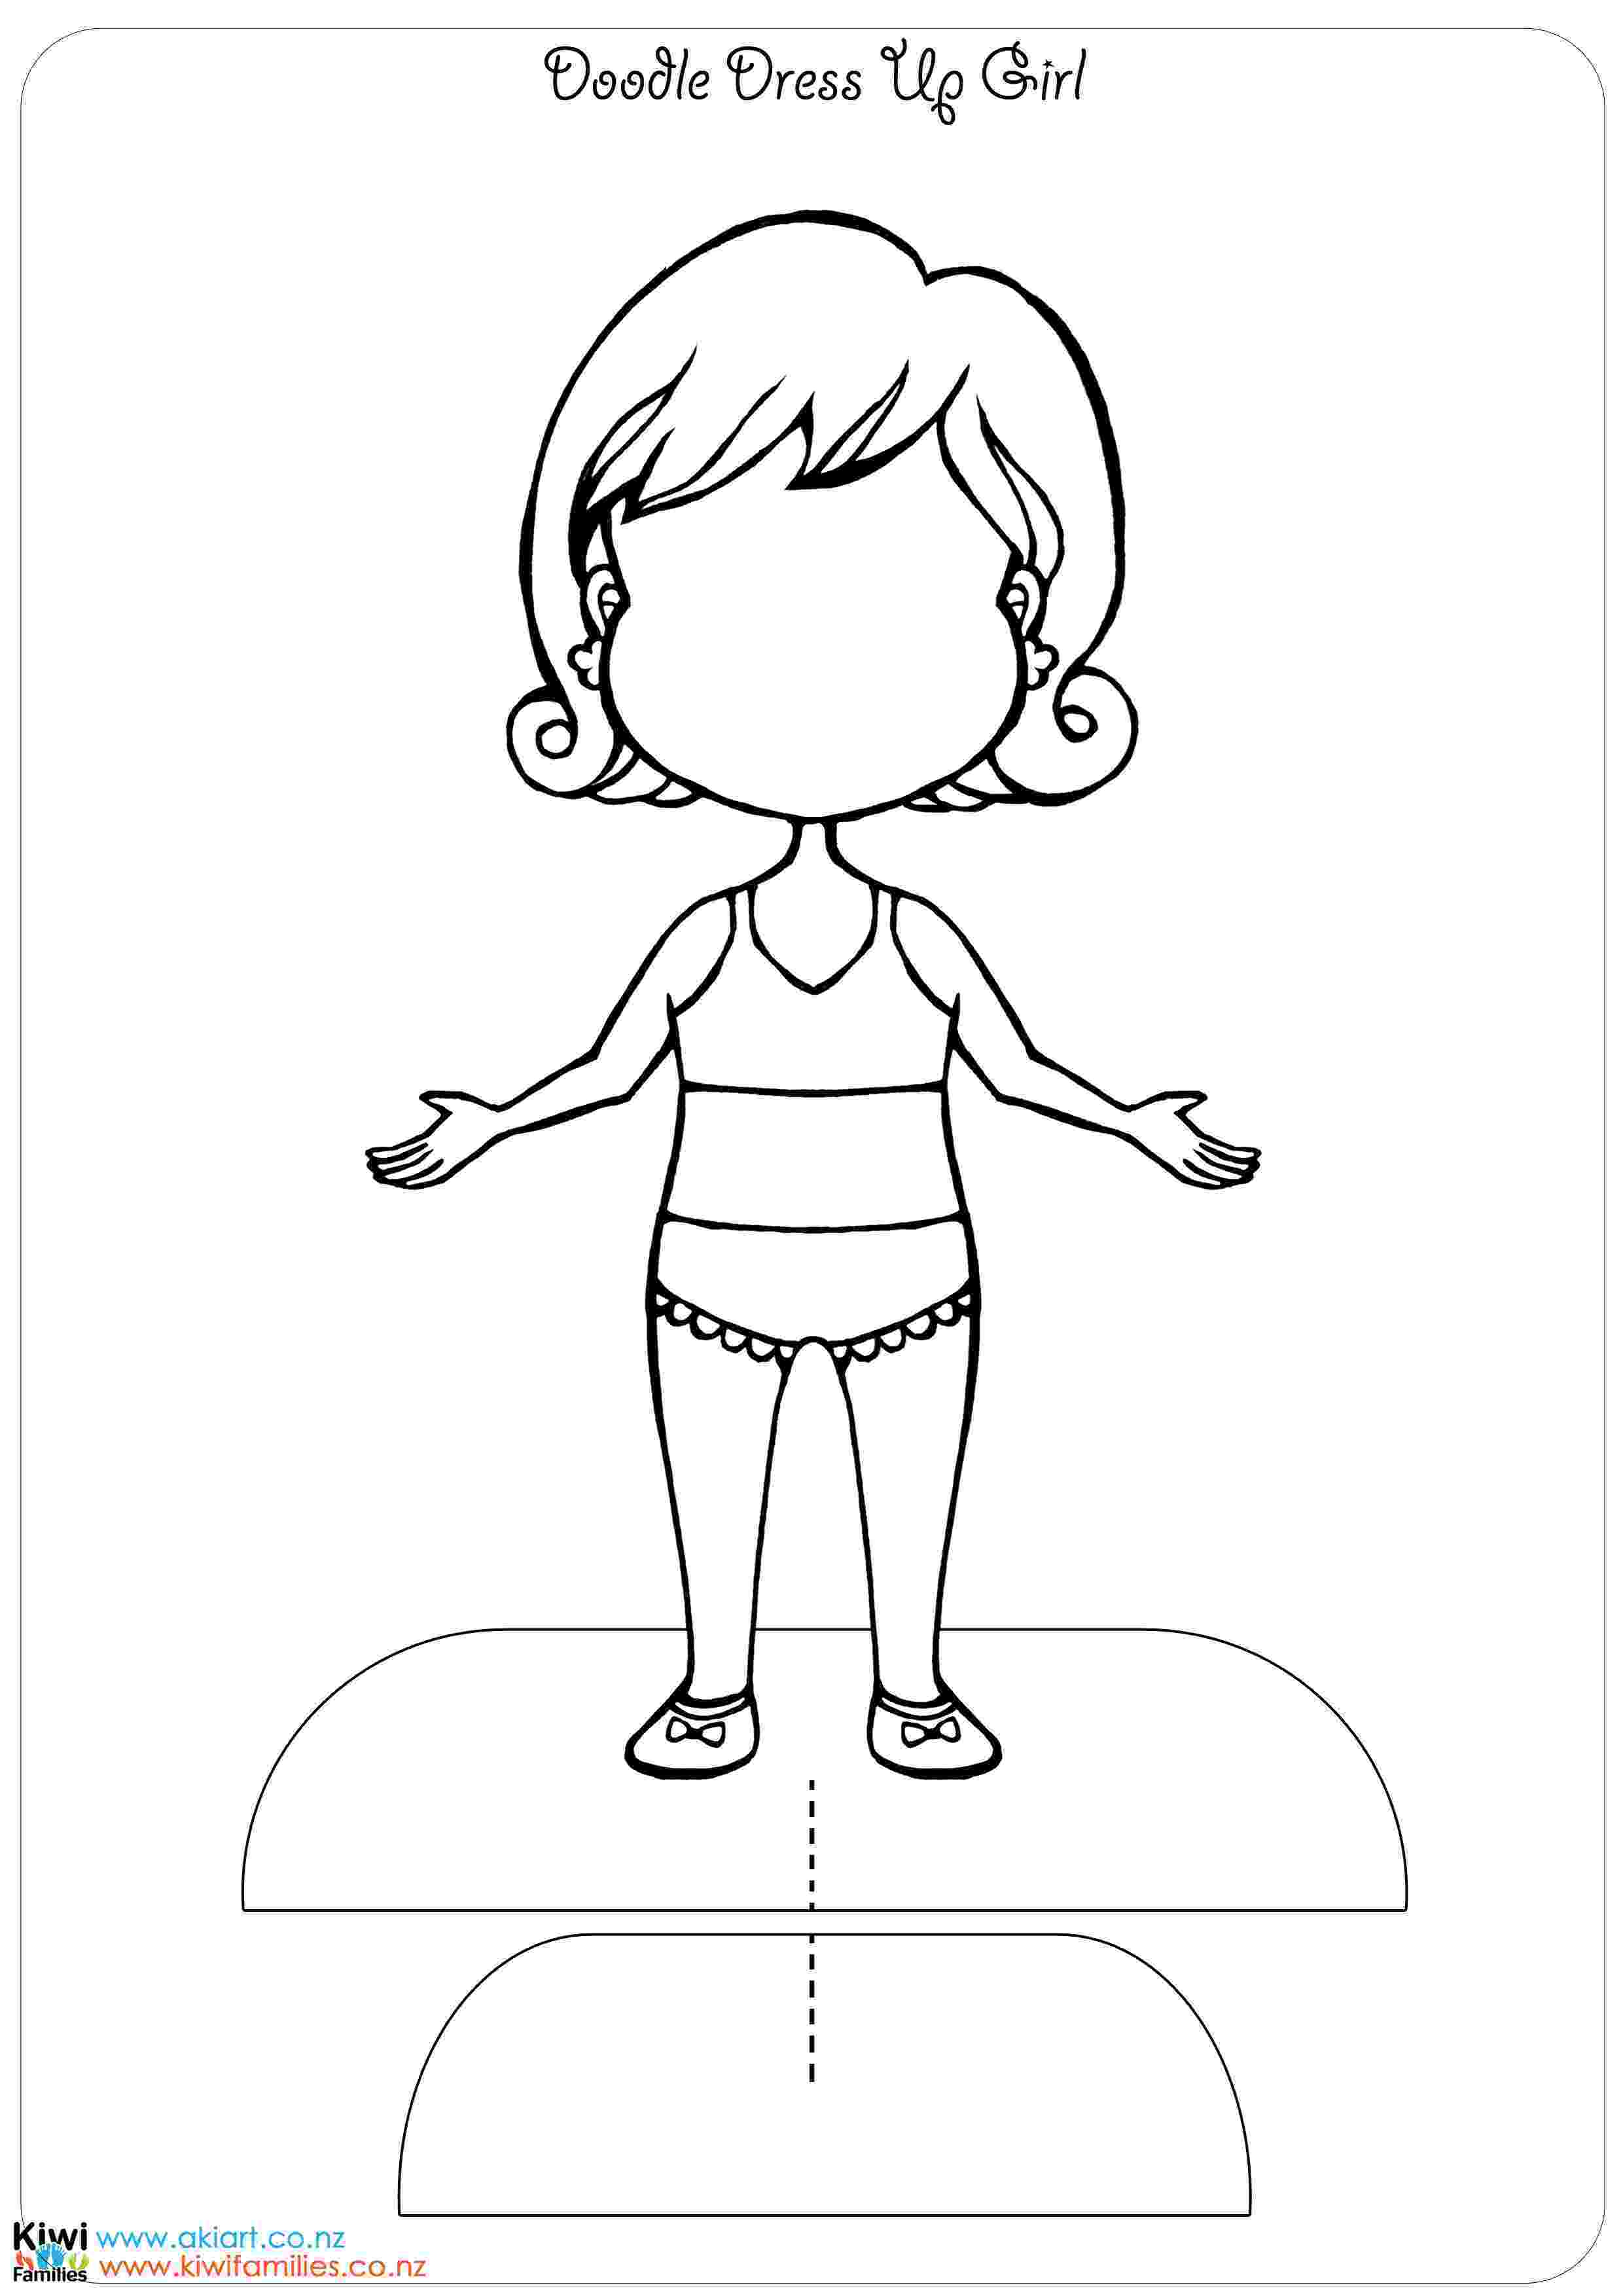 paper dress up doll make your own paper dolls kiwi families paper dress up doll 1 1